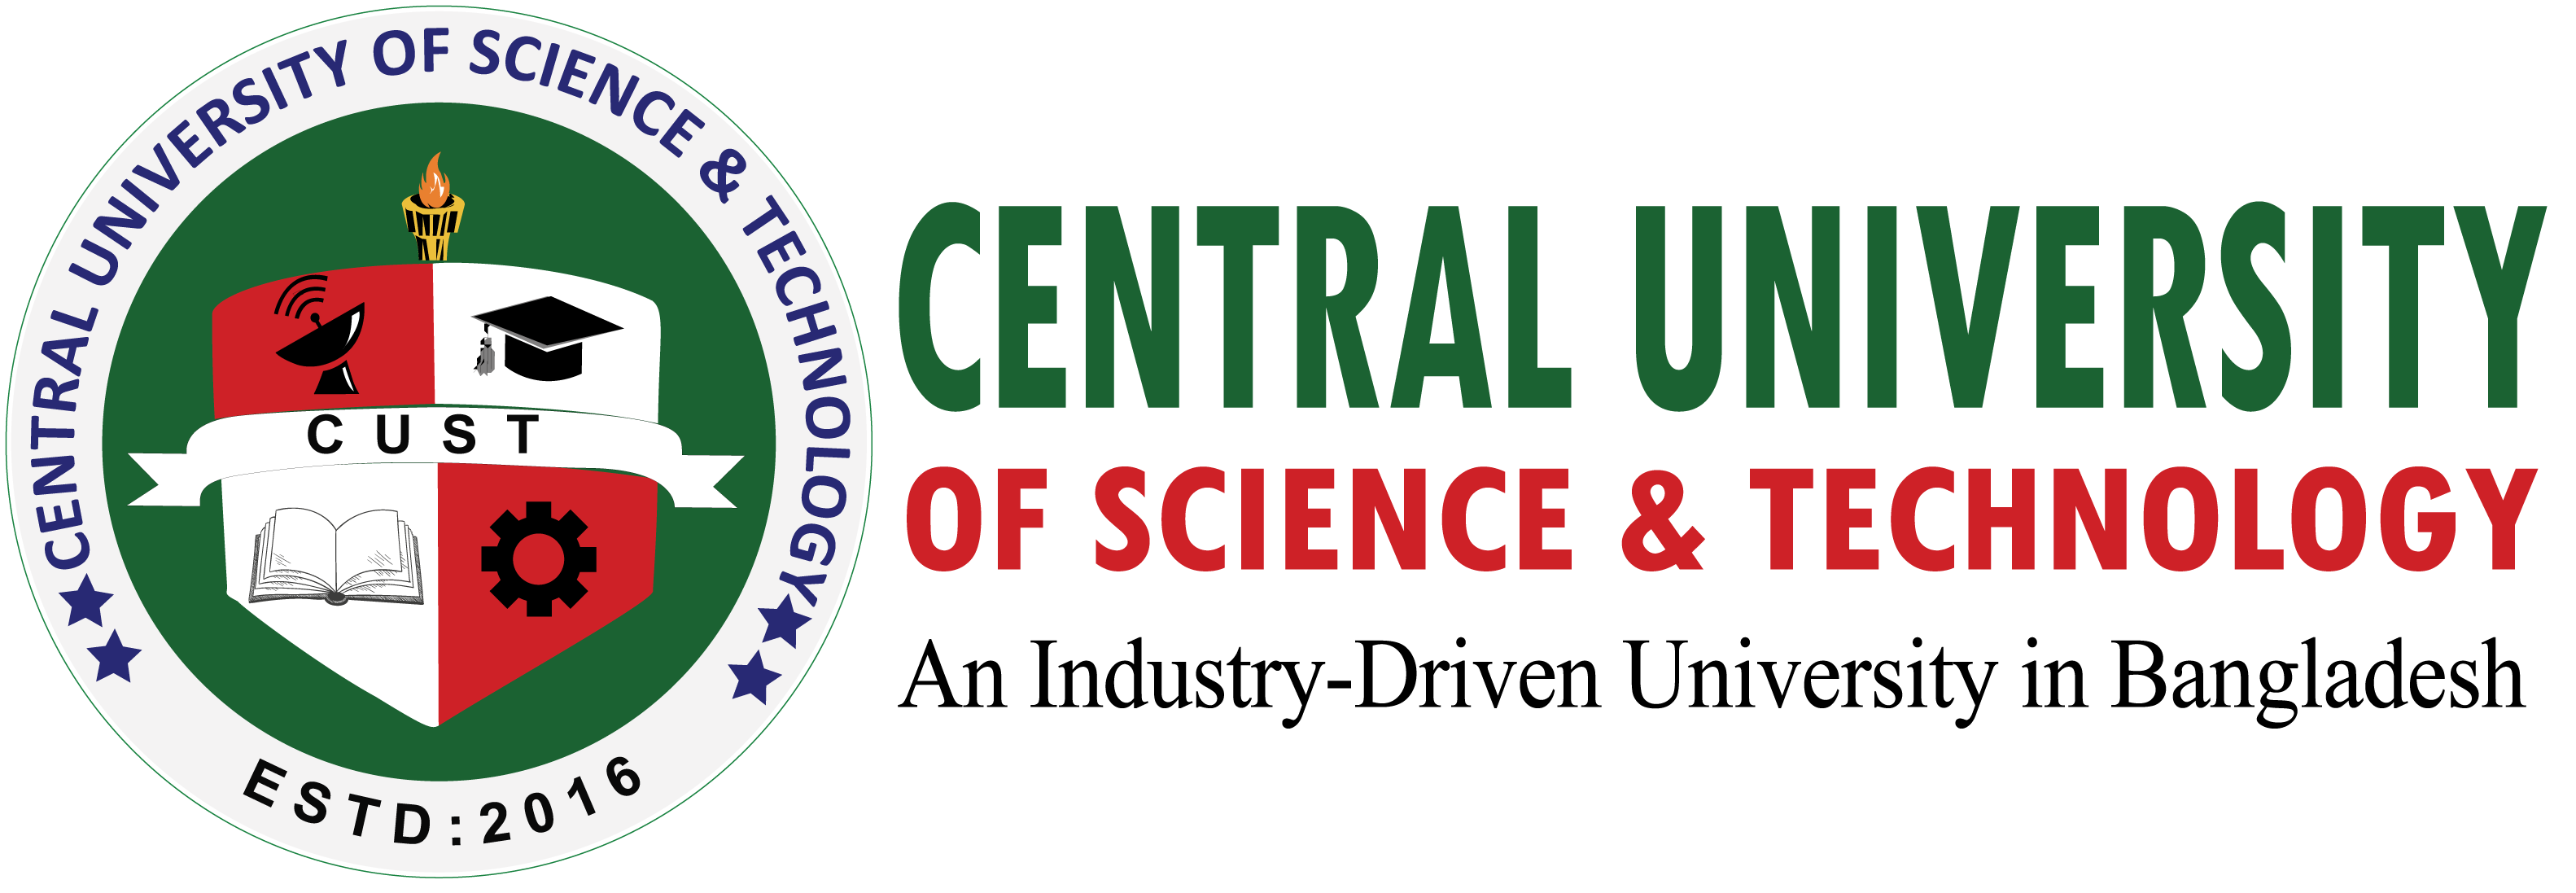 Center for Undergraduate & Postgraduate Studies - Central University of Science & Technology